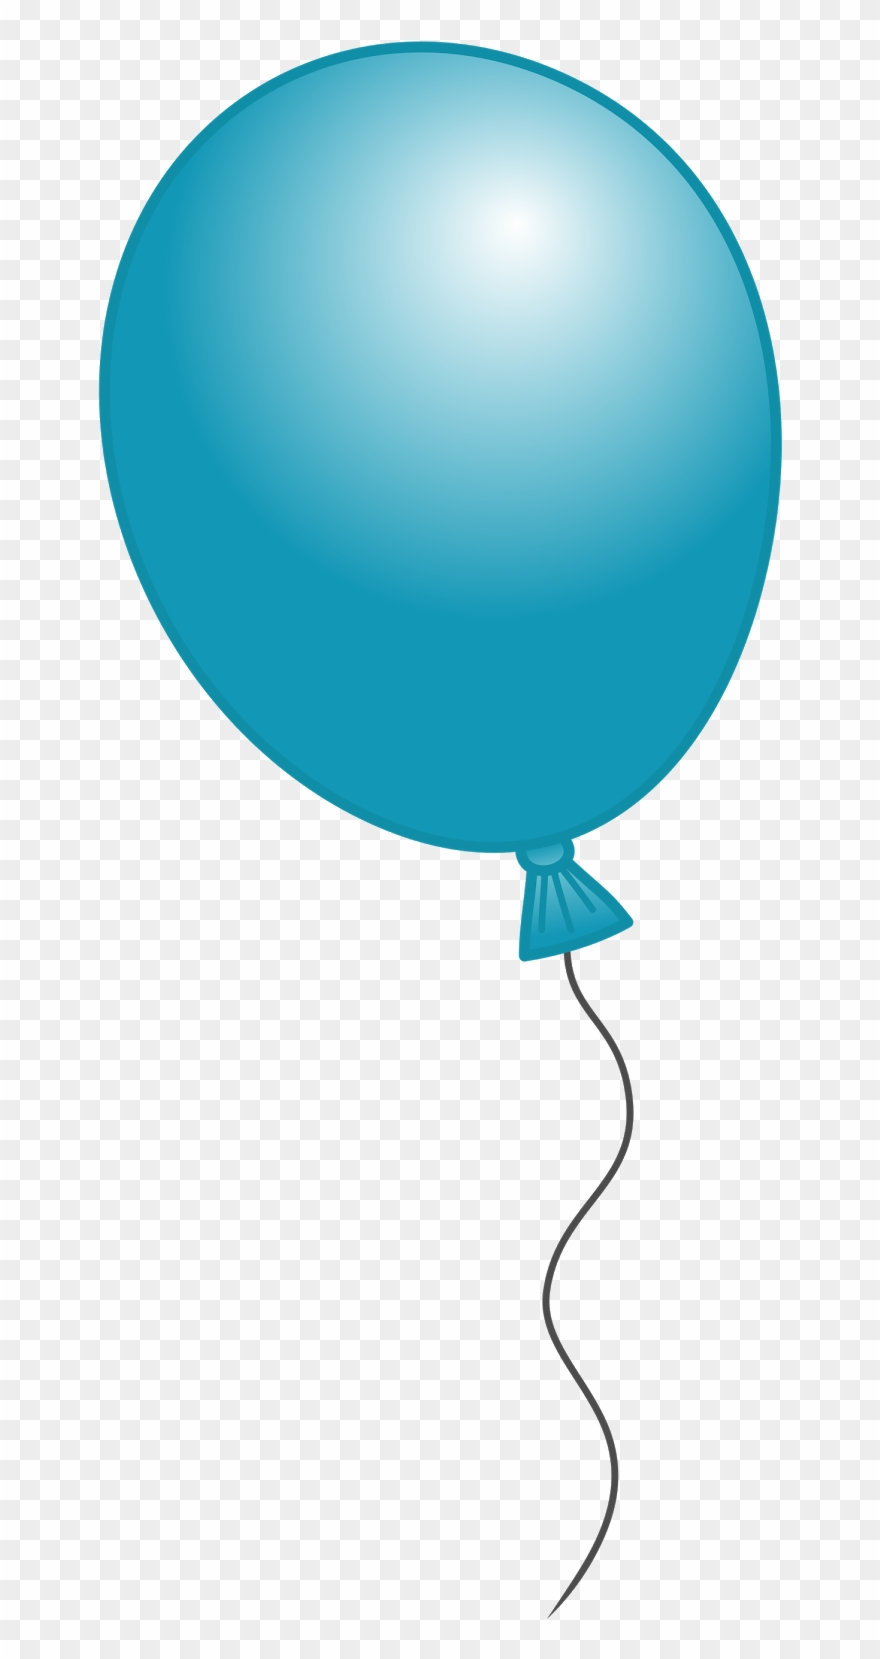 Balloon clear background. Black balloons cliparts free